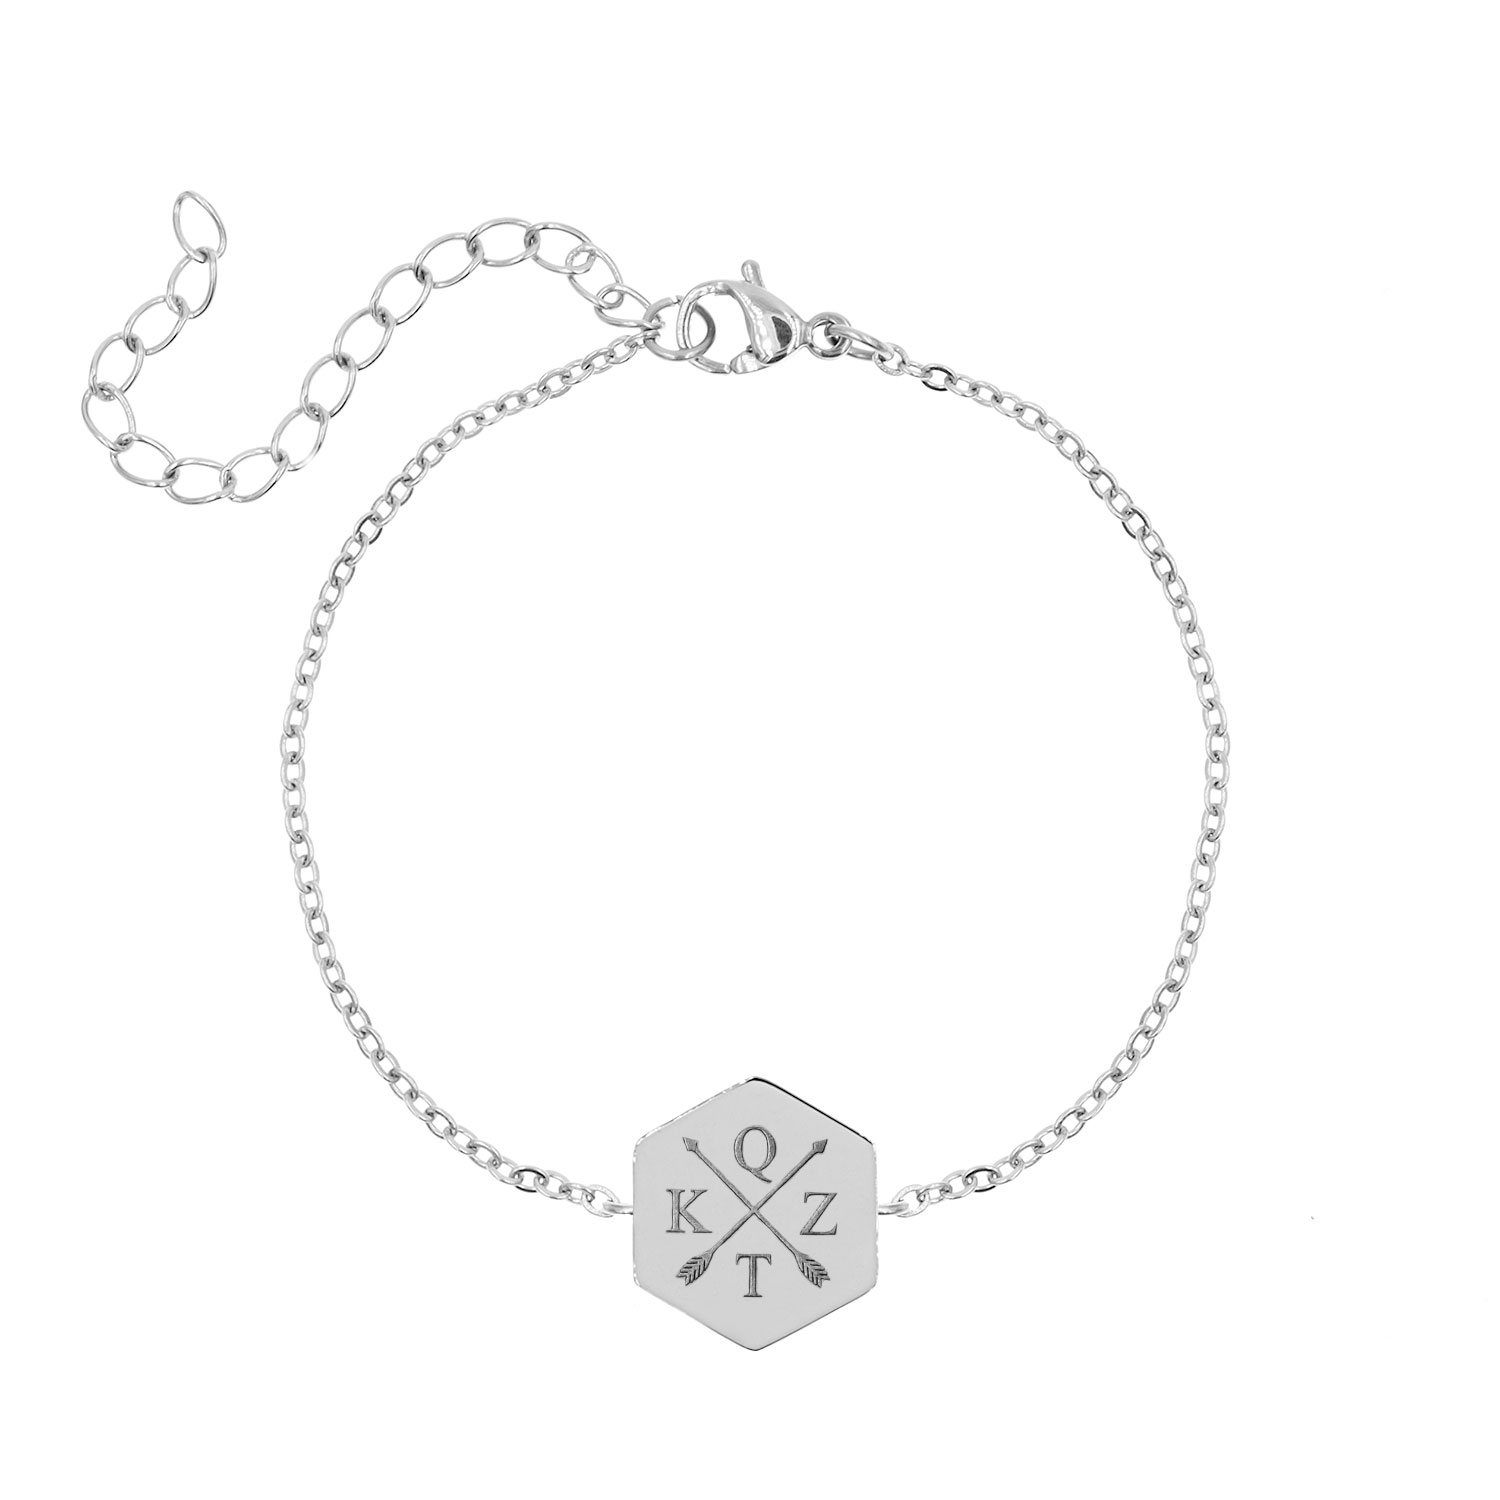 Armband met 4 letters